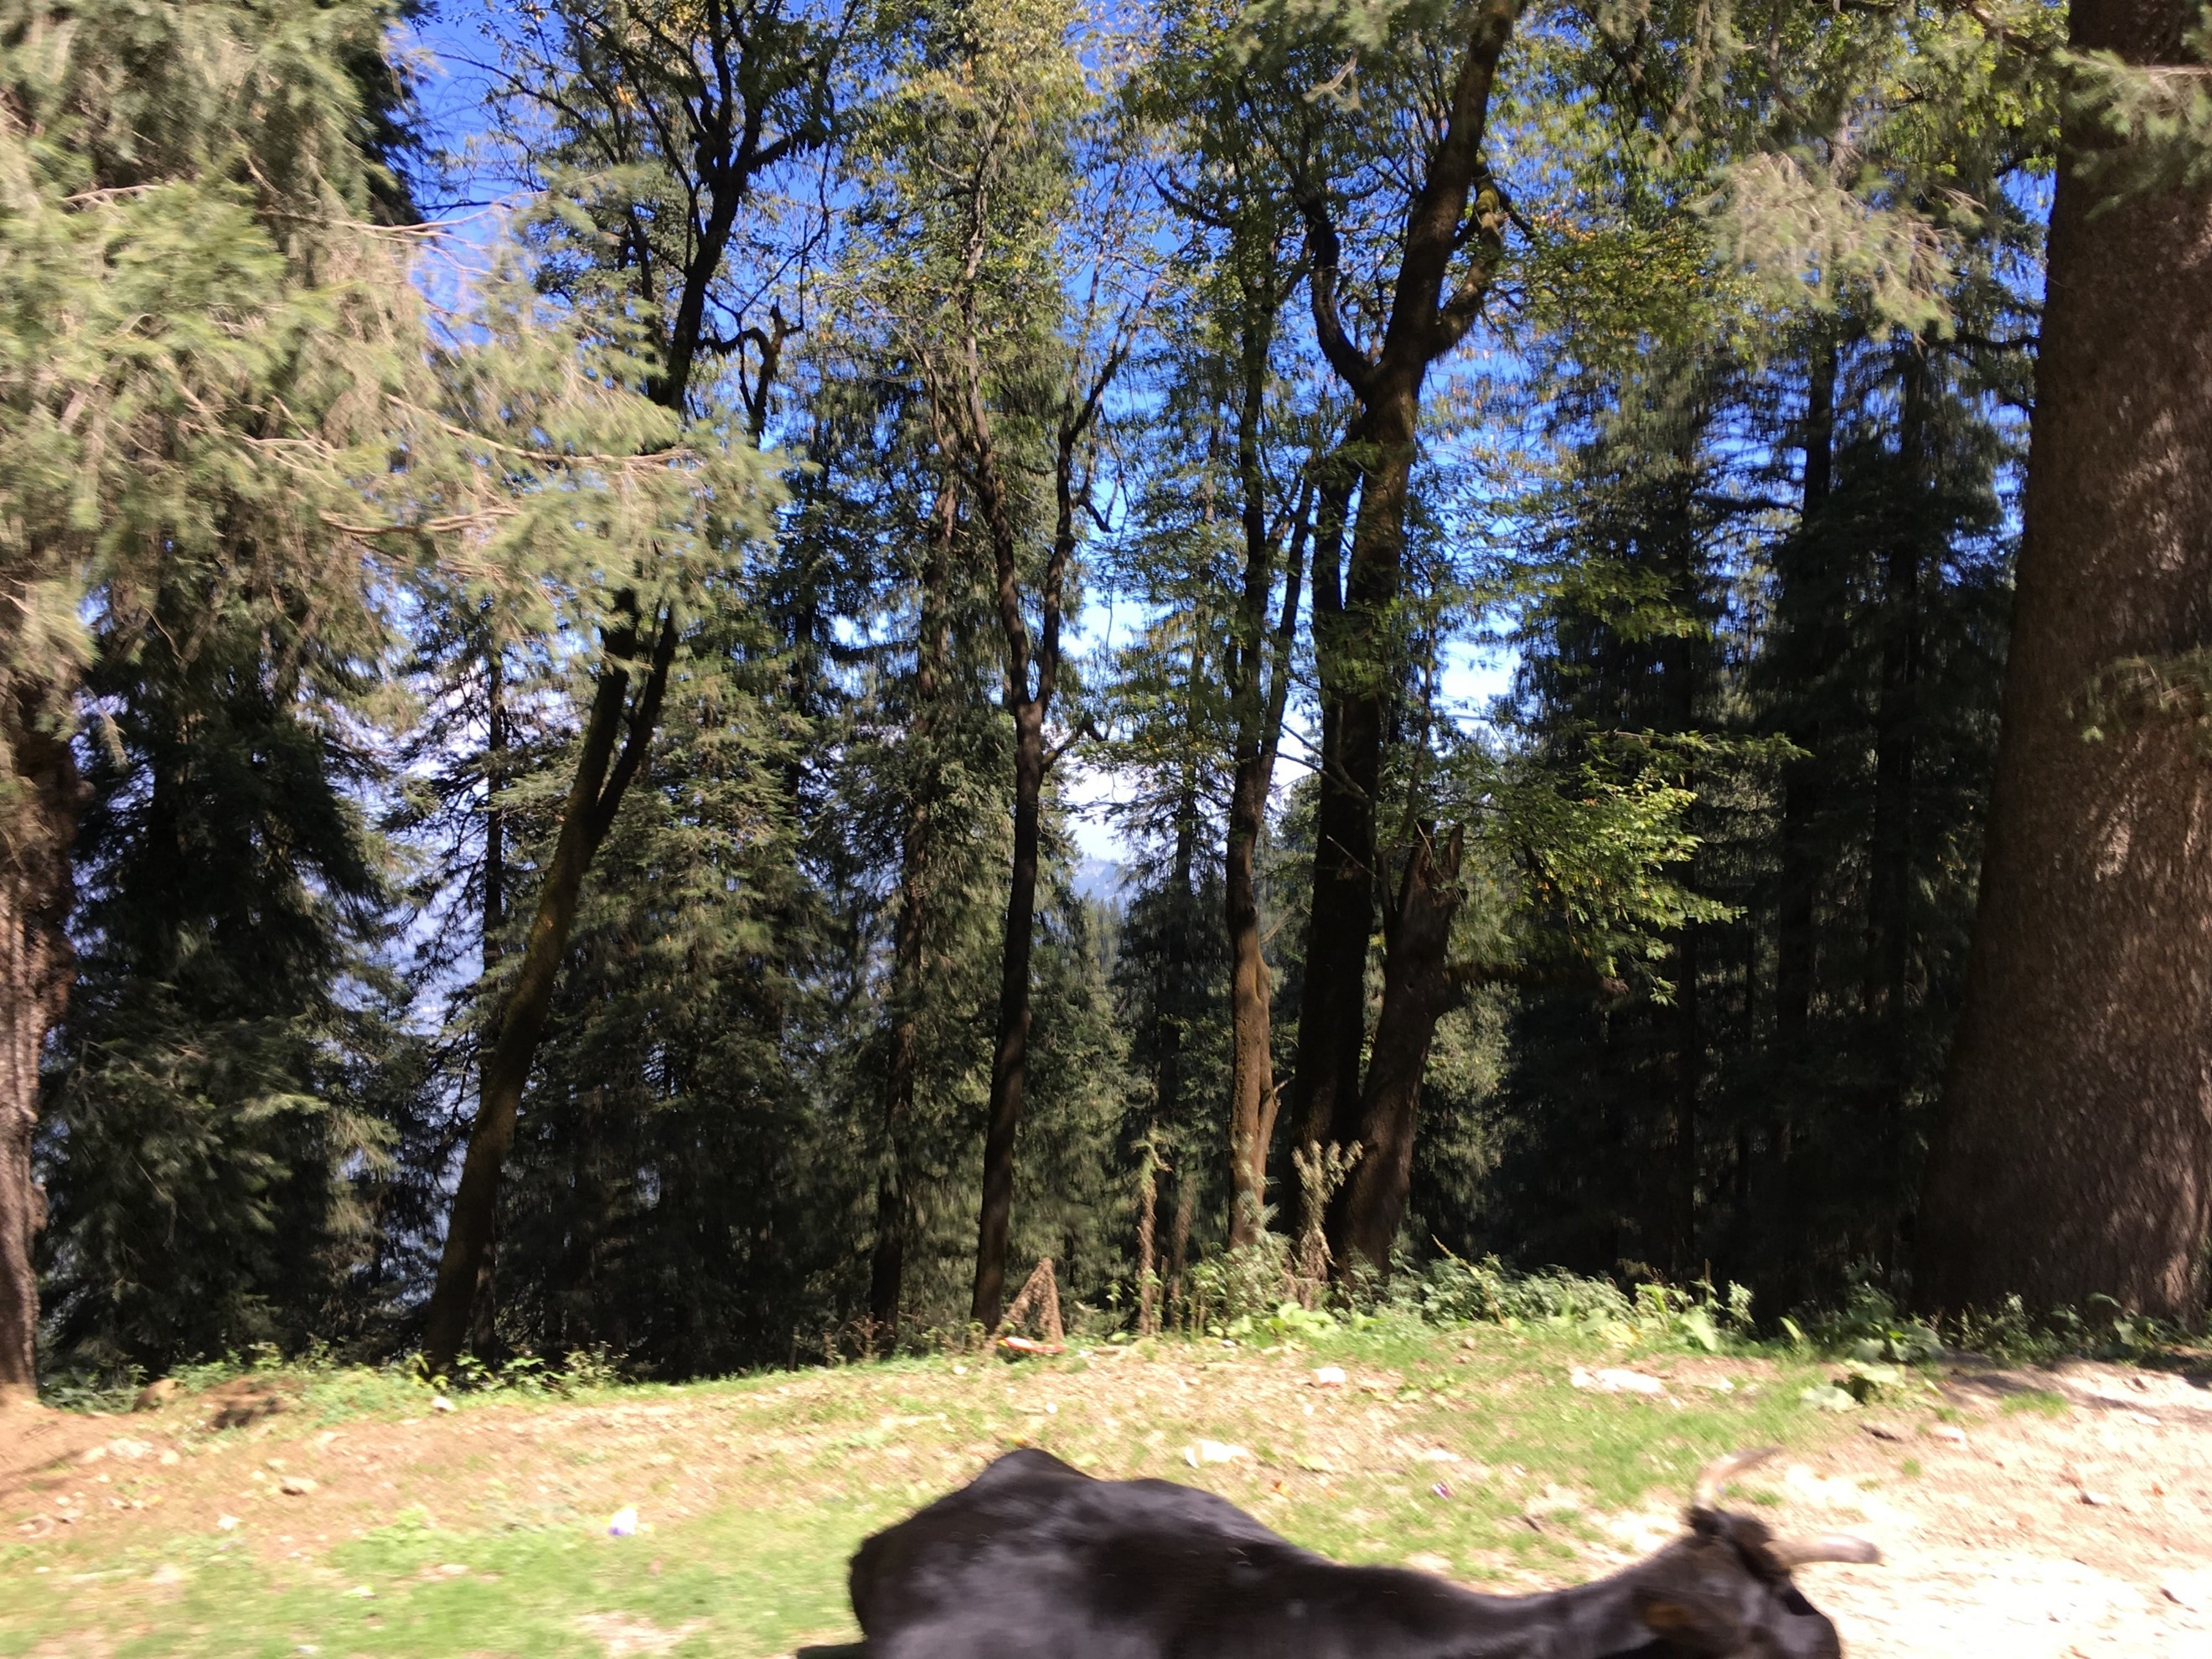 A black cow standing next to a forest and the trees